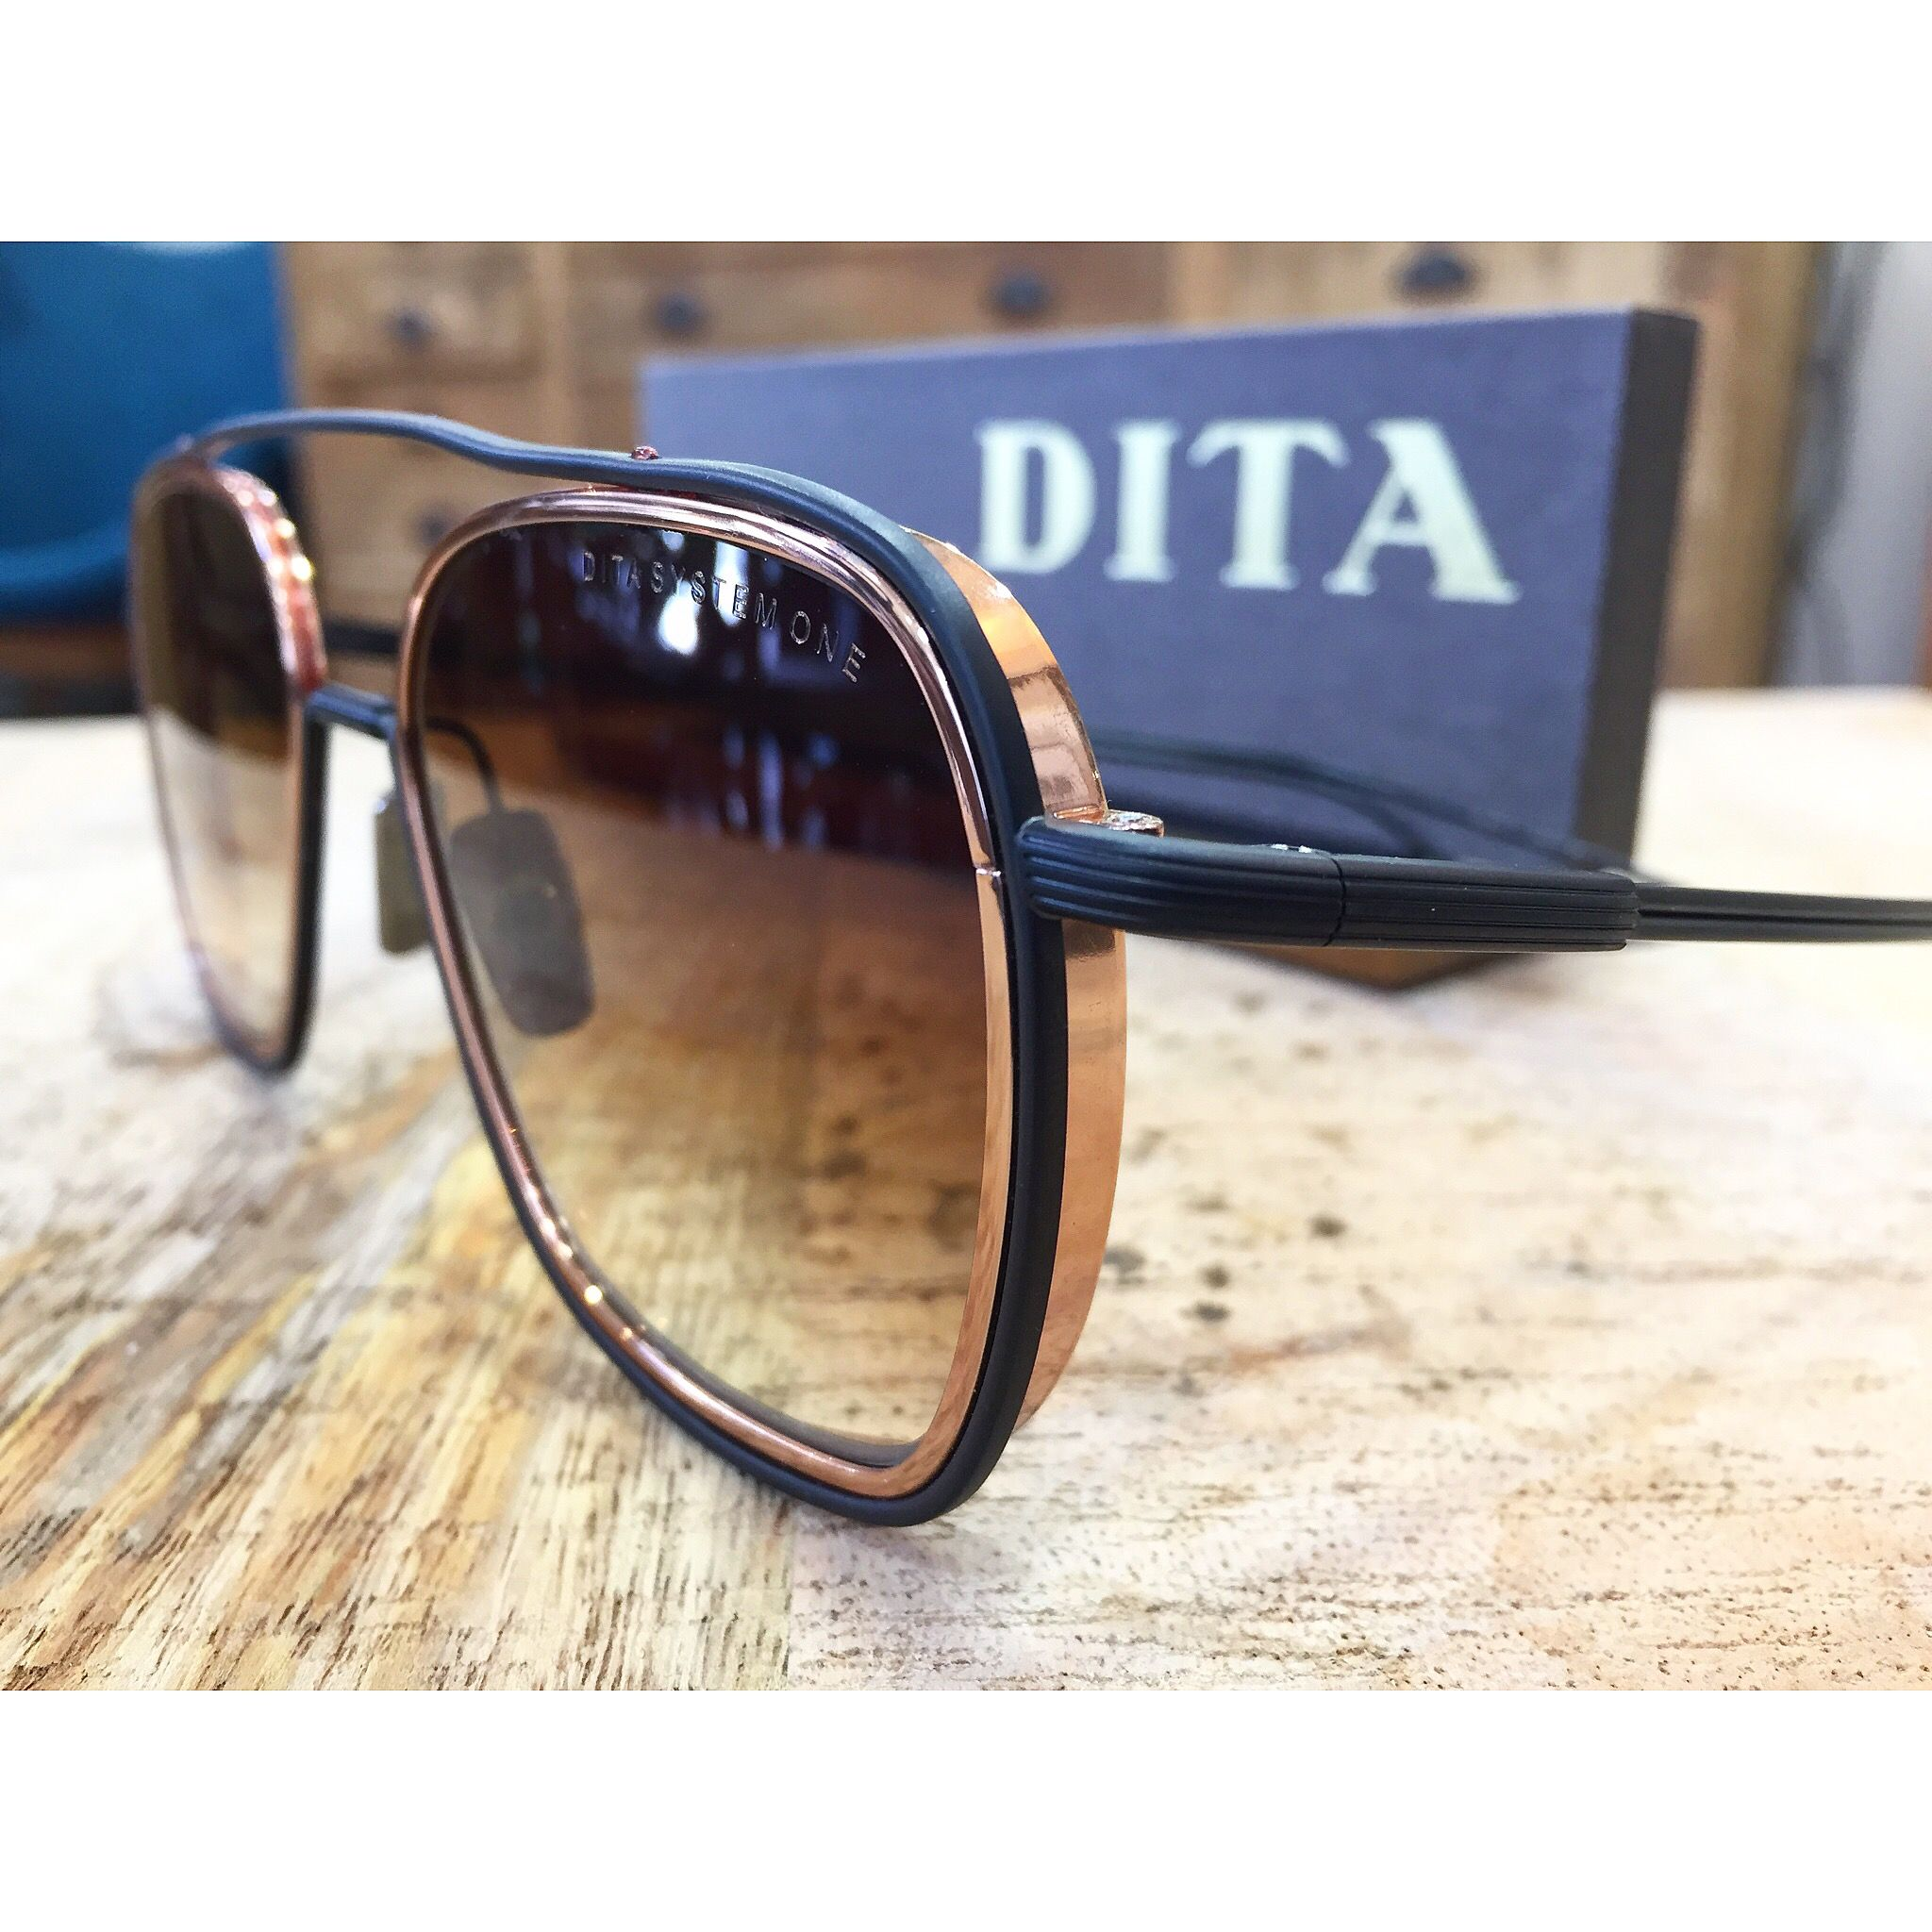 ee857fd4e06d Pin by Dadams on DJa- Dita Men s Sunglasses in 2019